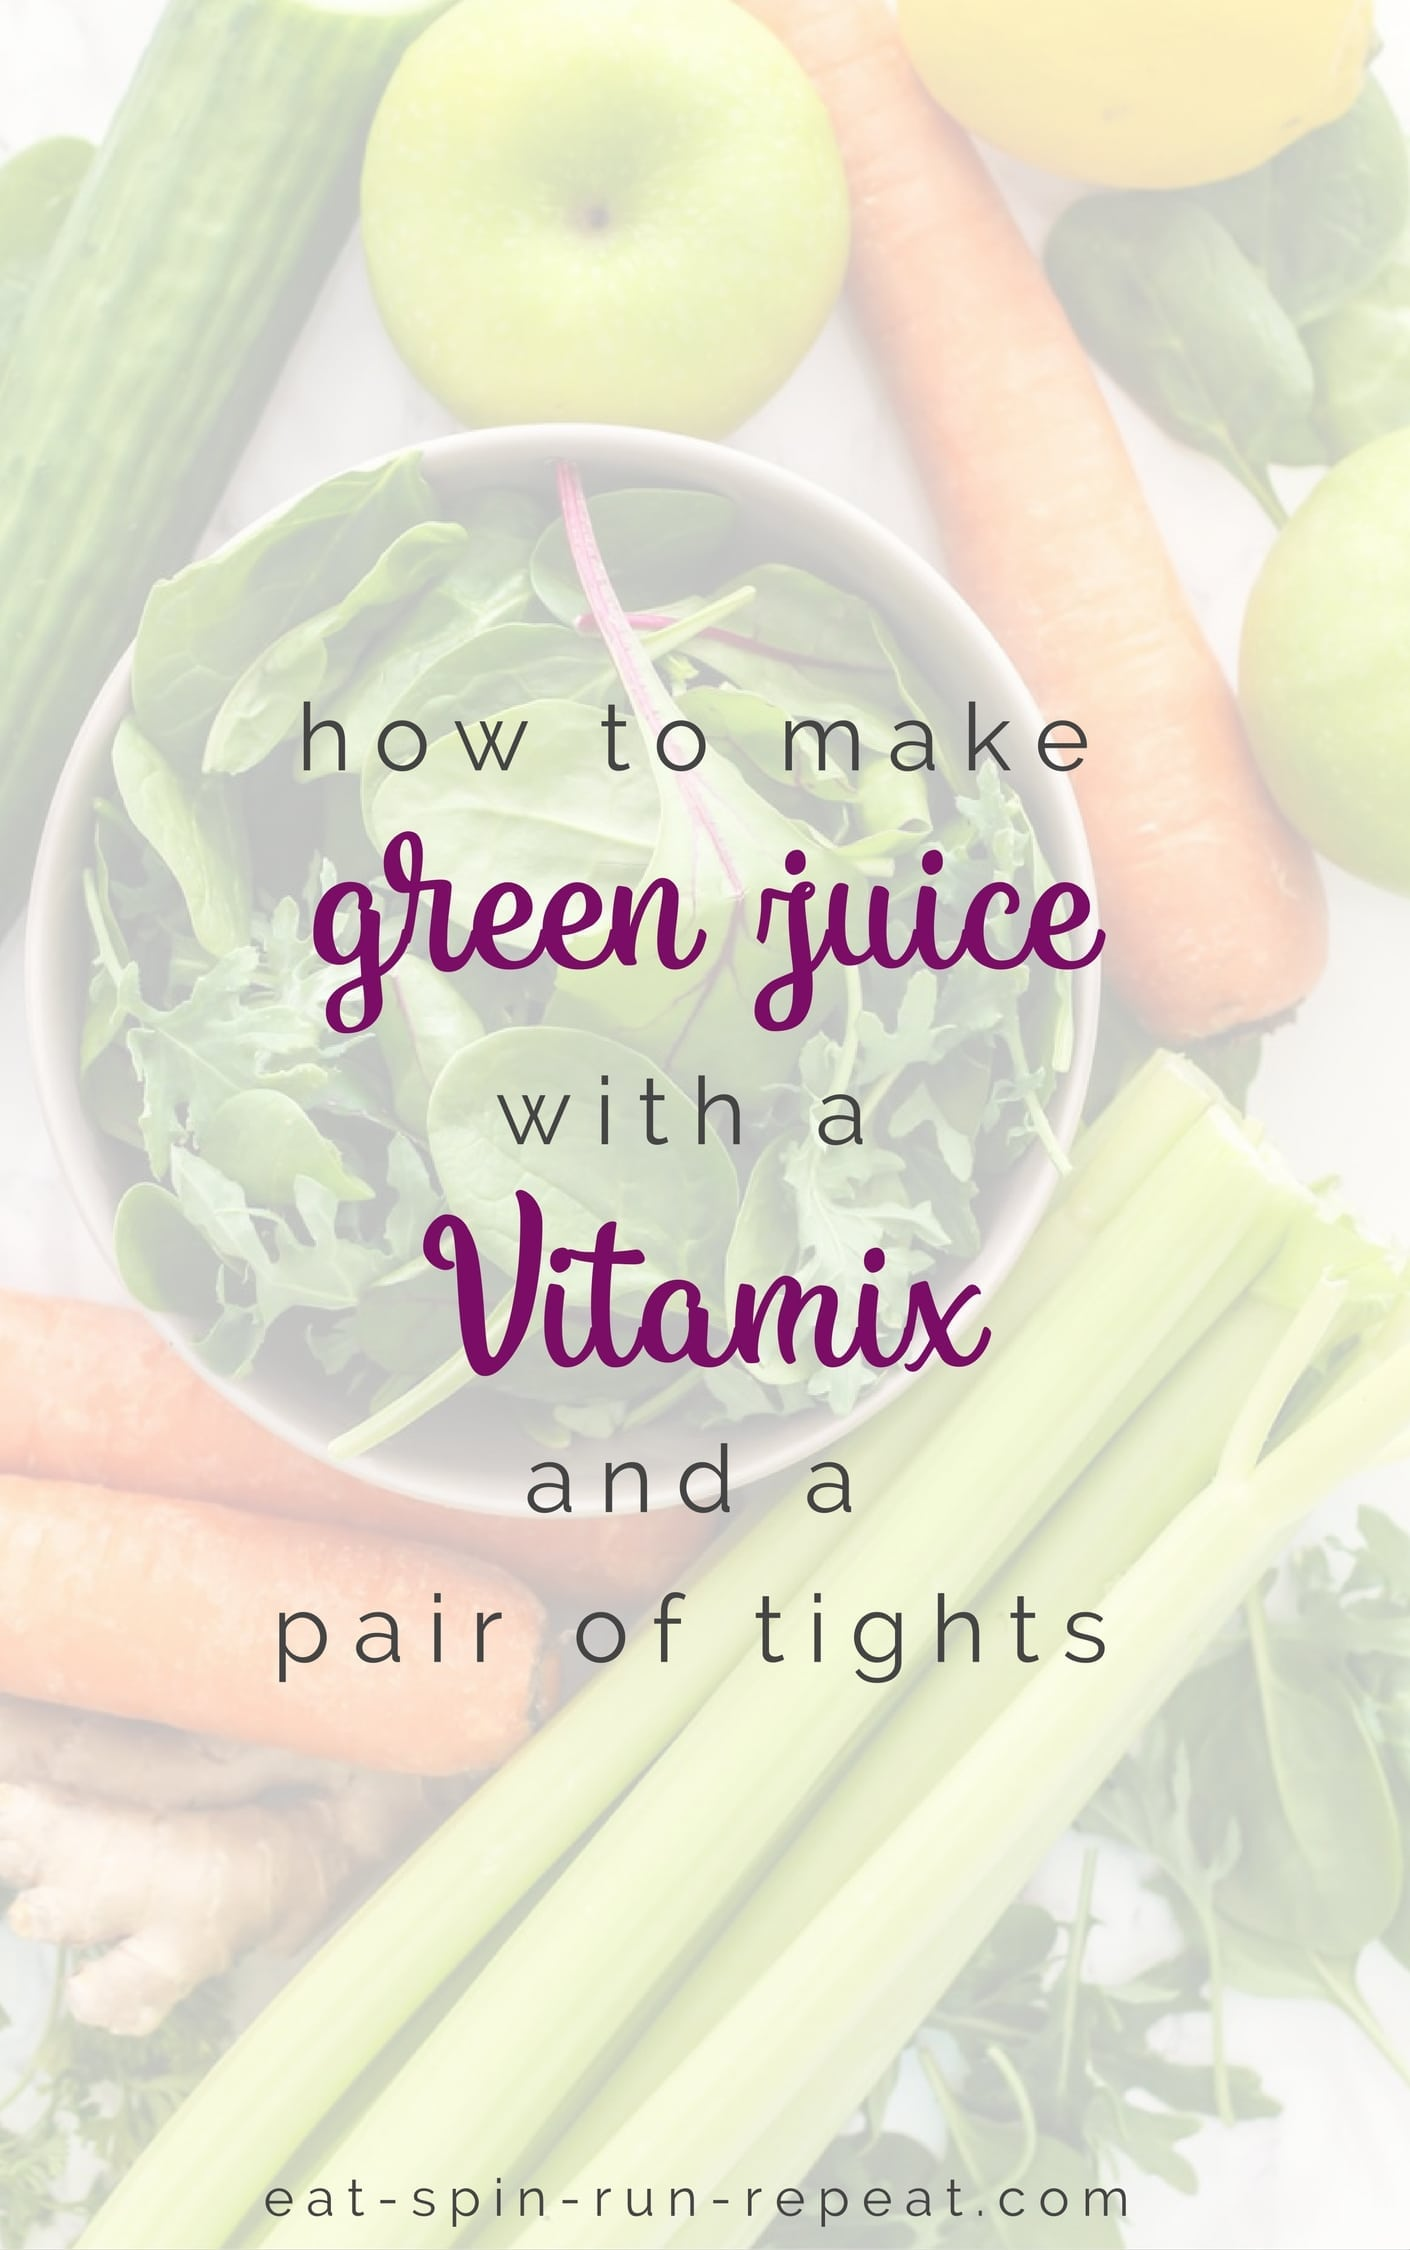 How to make green juice with a vitamix and a pair of tights forumfinder Images